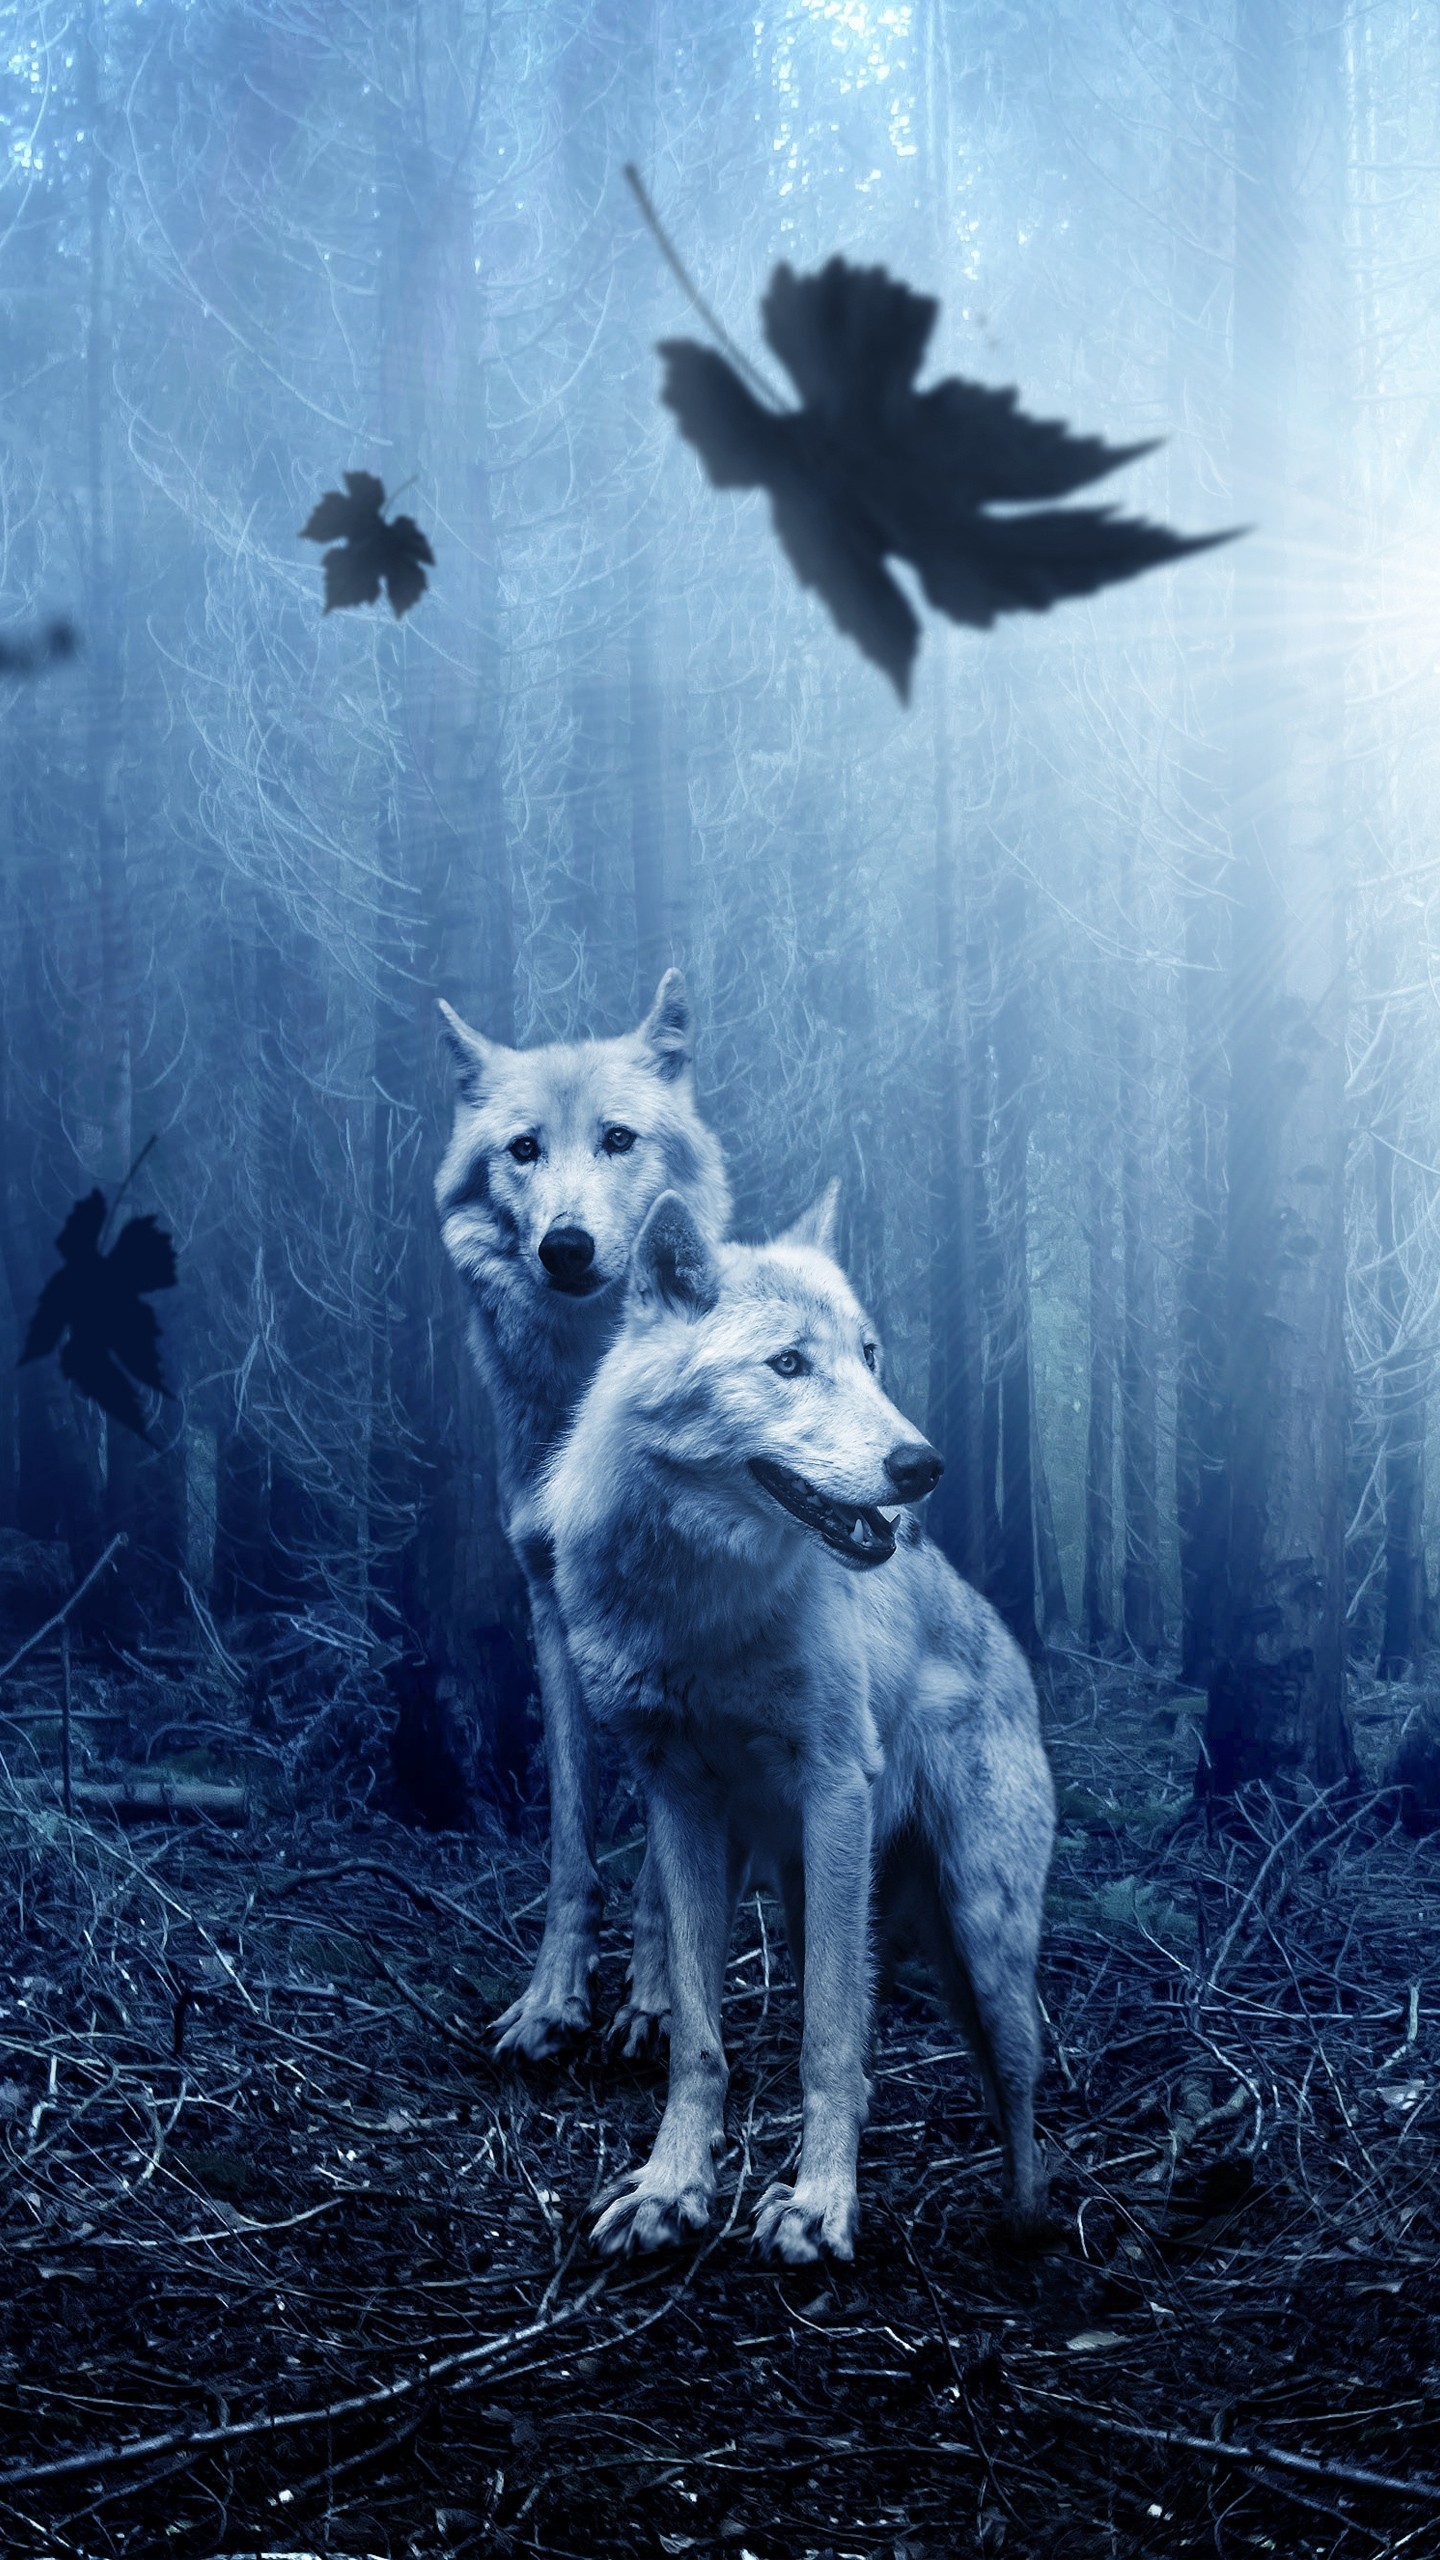 Wallpaper Hd For Iphone 5s Forest Wolves 4k Wallpapers Hd Wallpapers Id 23141